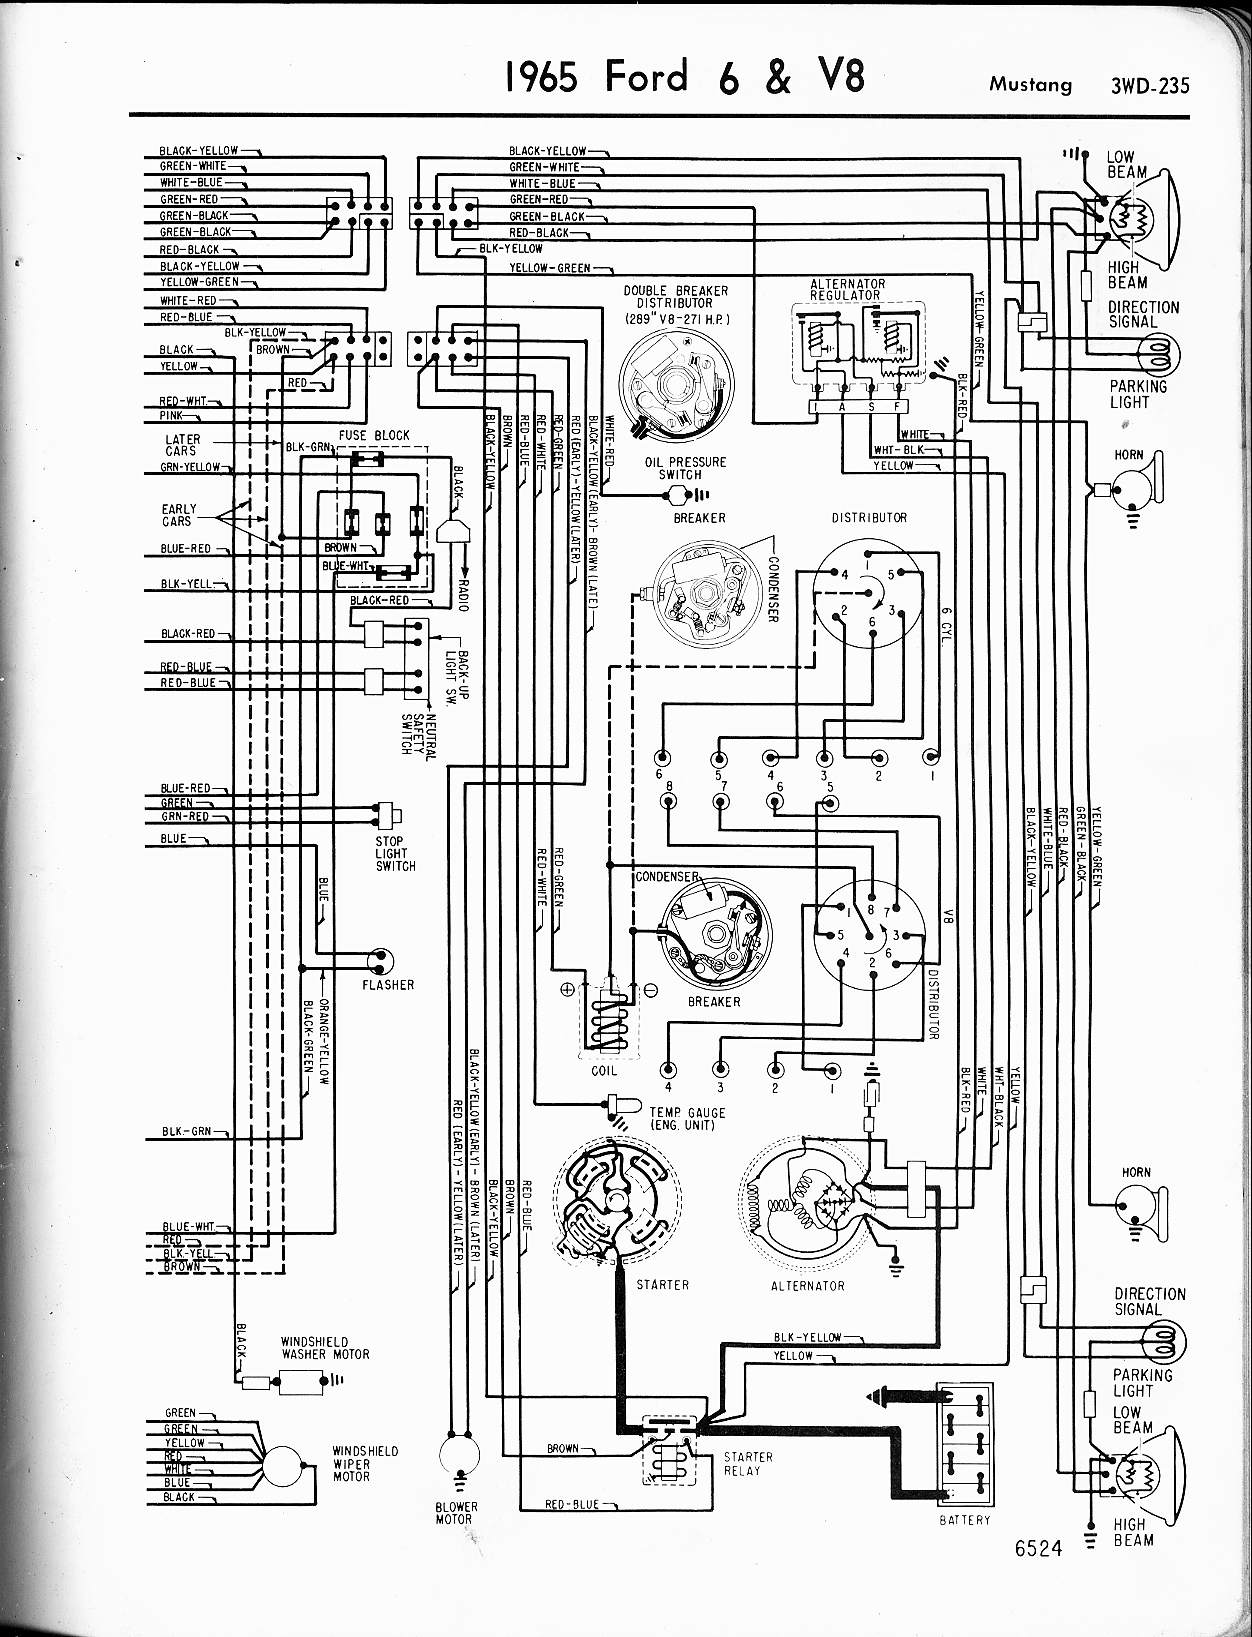 MWire5765 235 1969 ford f100 wiring diagram 79 ford wiring diagram \u2022 wiring 65 ford f100 wiring diagram at webbmarketing.co